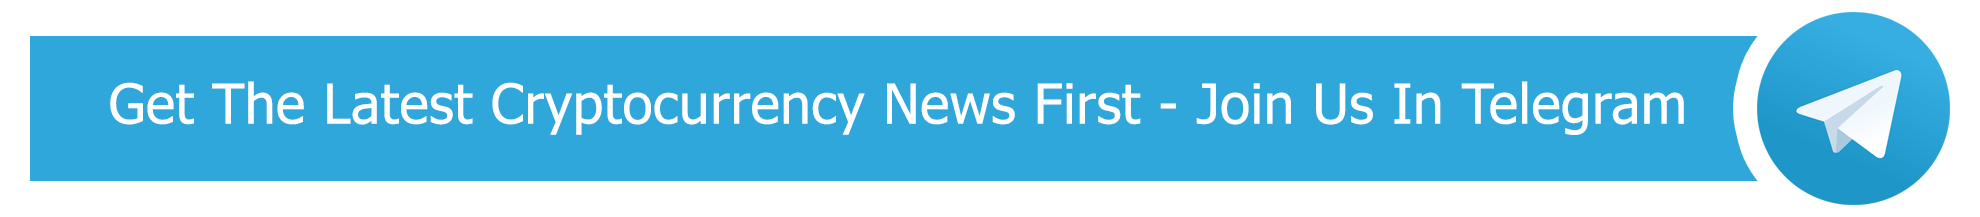 Get The Latest Bitcoin News First - Join Us In Telegram